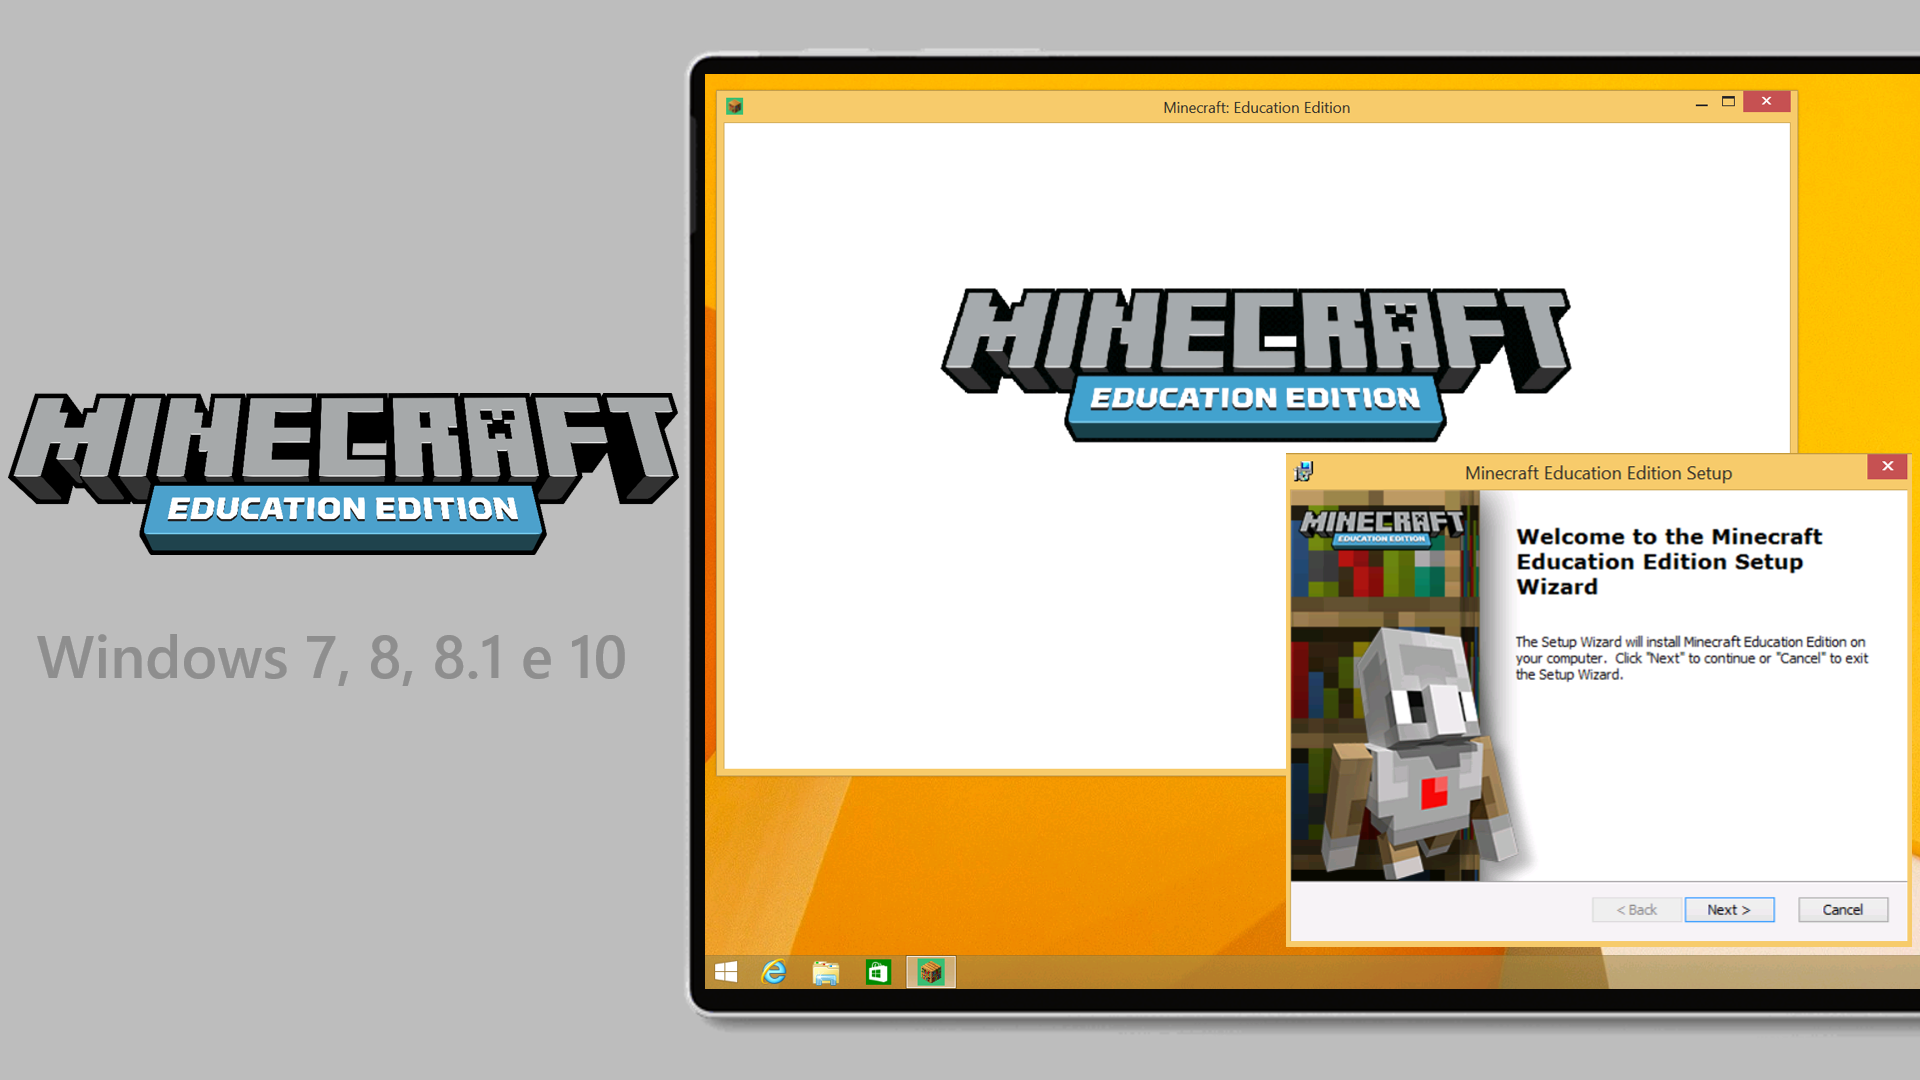 Minecraft: Education Edition per Windows 7, 8, 8.1 e 10